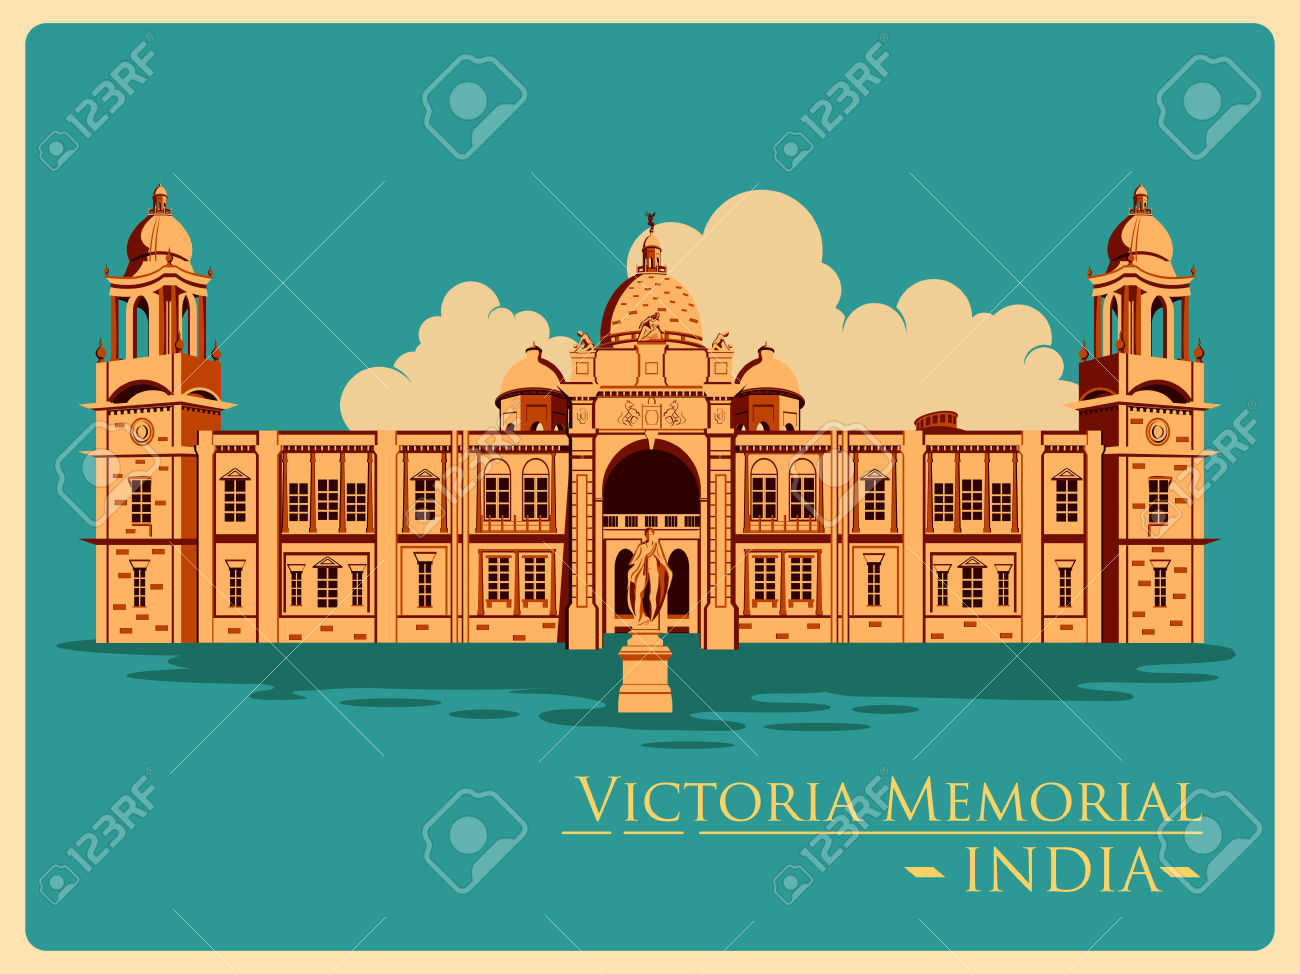 Vintage Poster Of Victoria Memorial In Kolkata, Famous Monument.